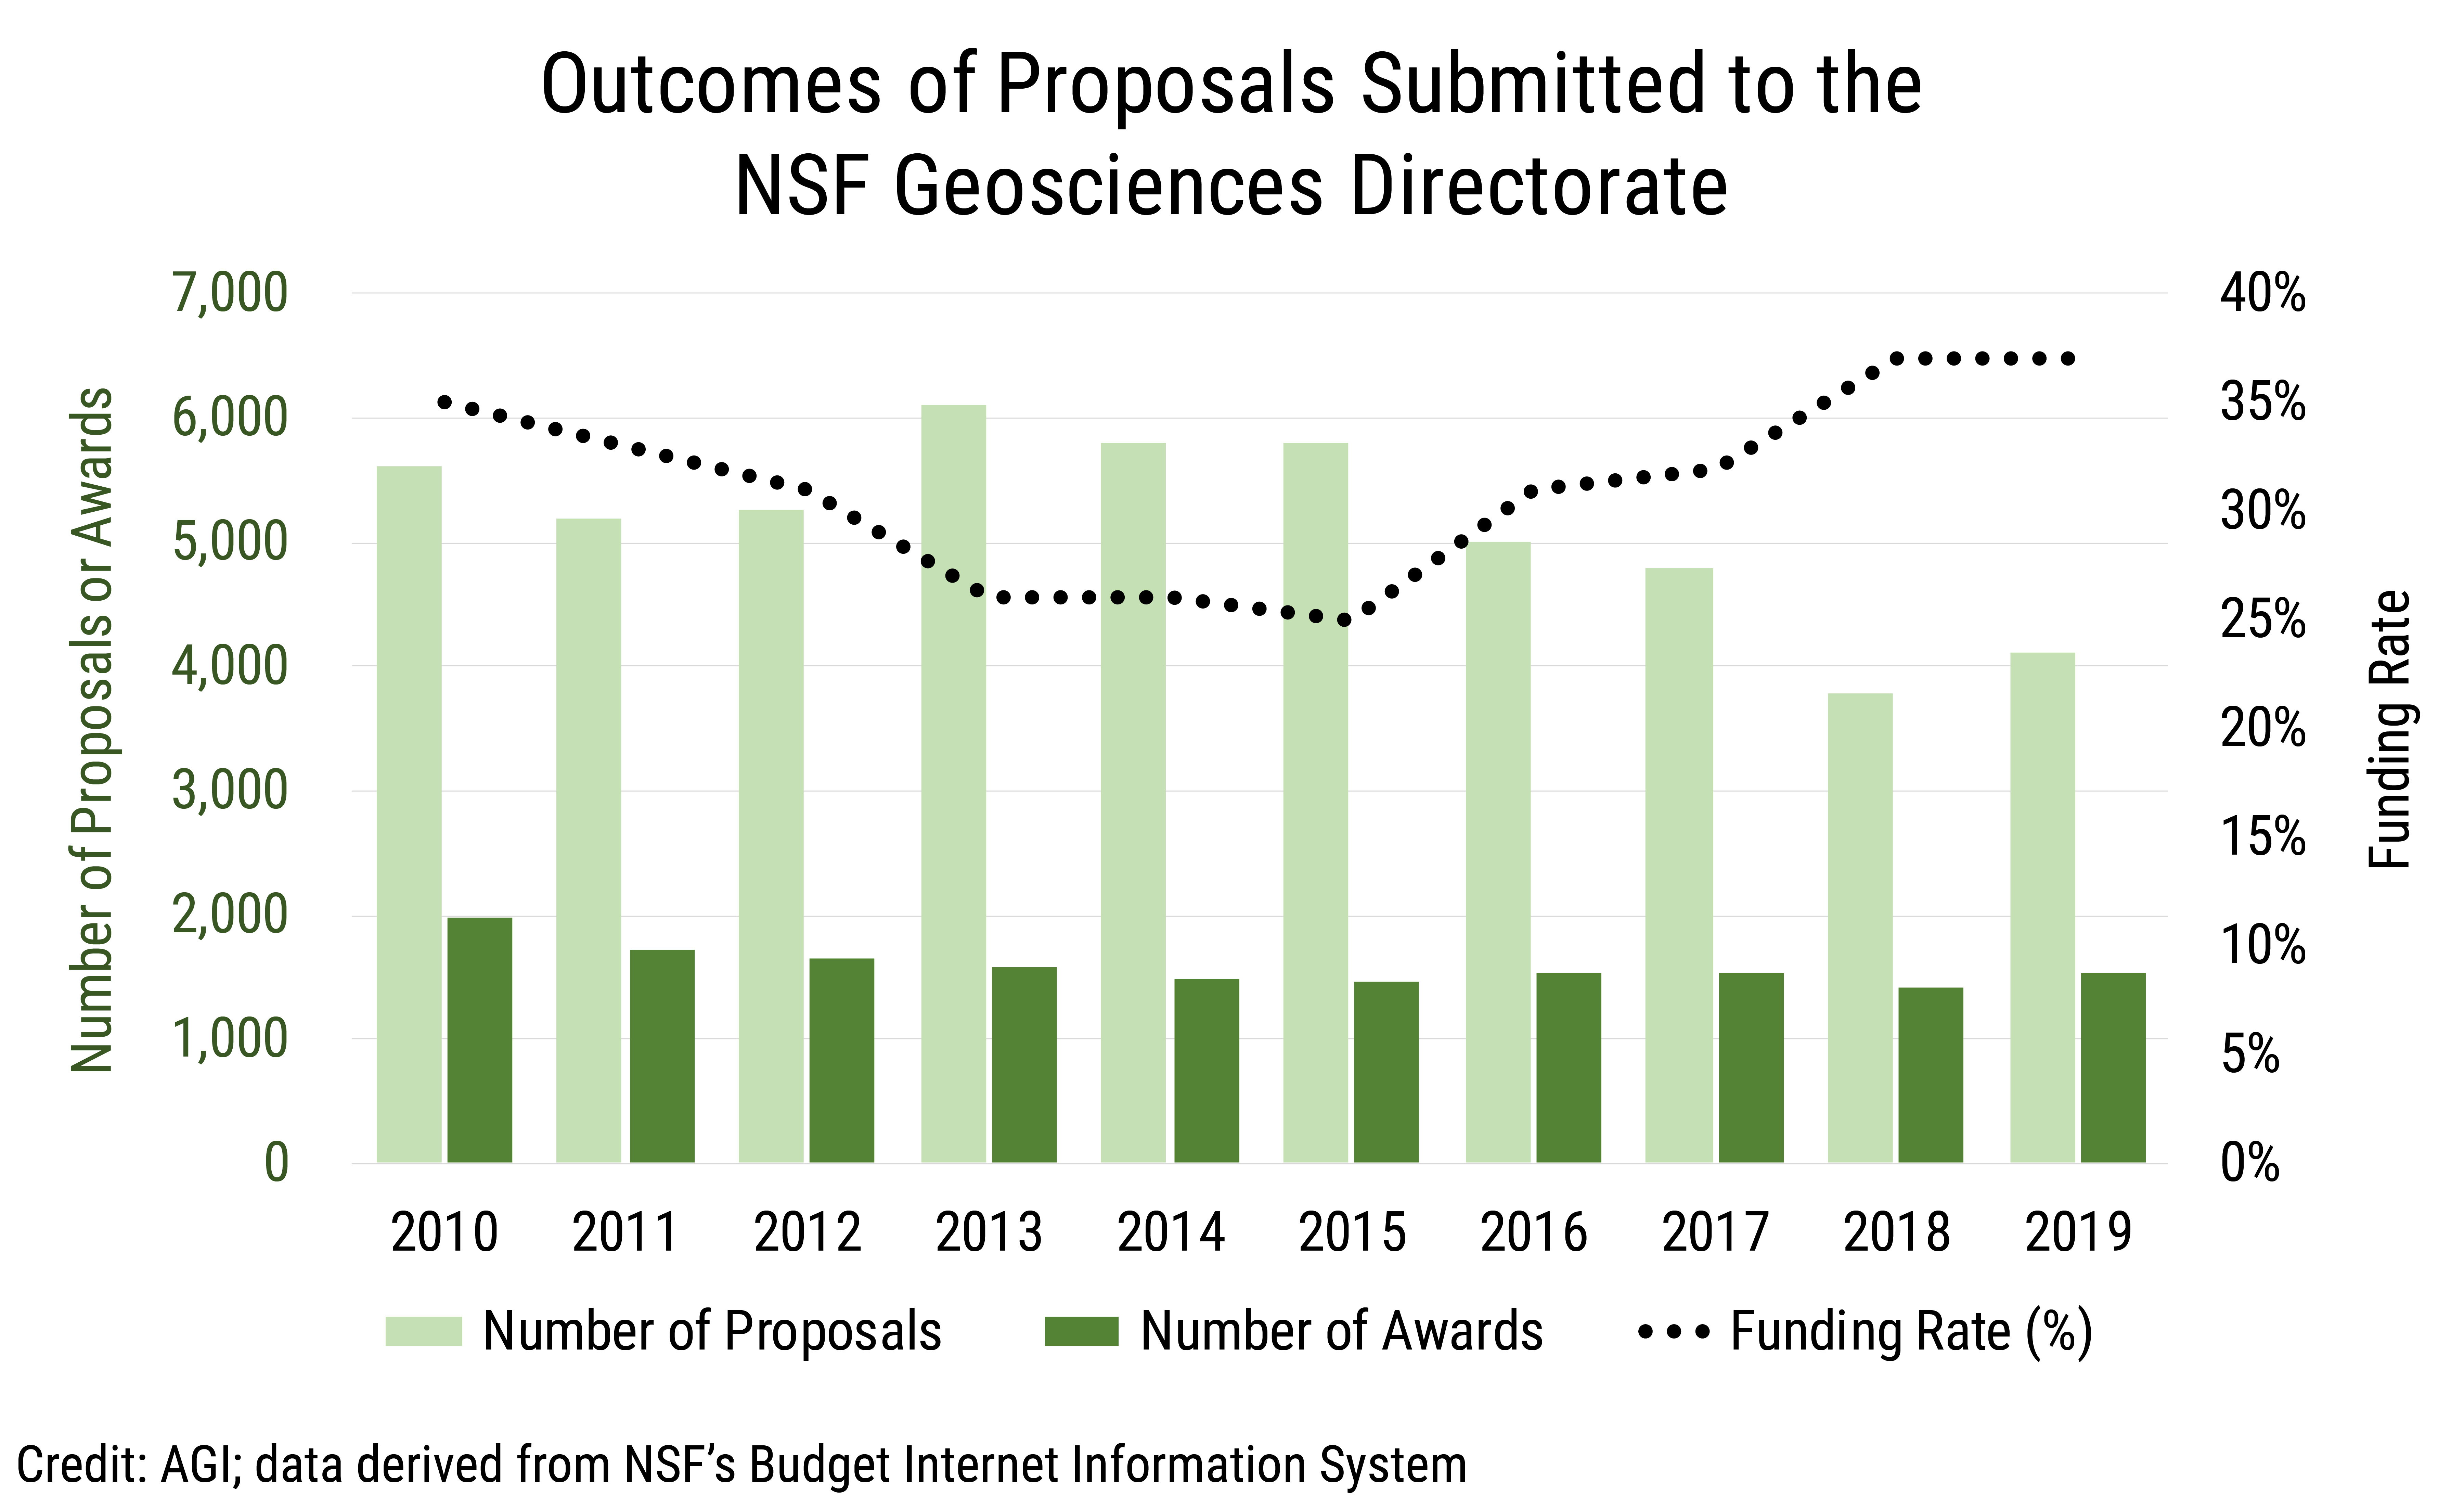 Data Brief 2019-016 chart 01: Outcomes of Proposals Submitted to the NSF Geosciences Directorate (credit: AGI; data derived from NSF BIIS)